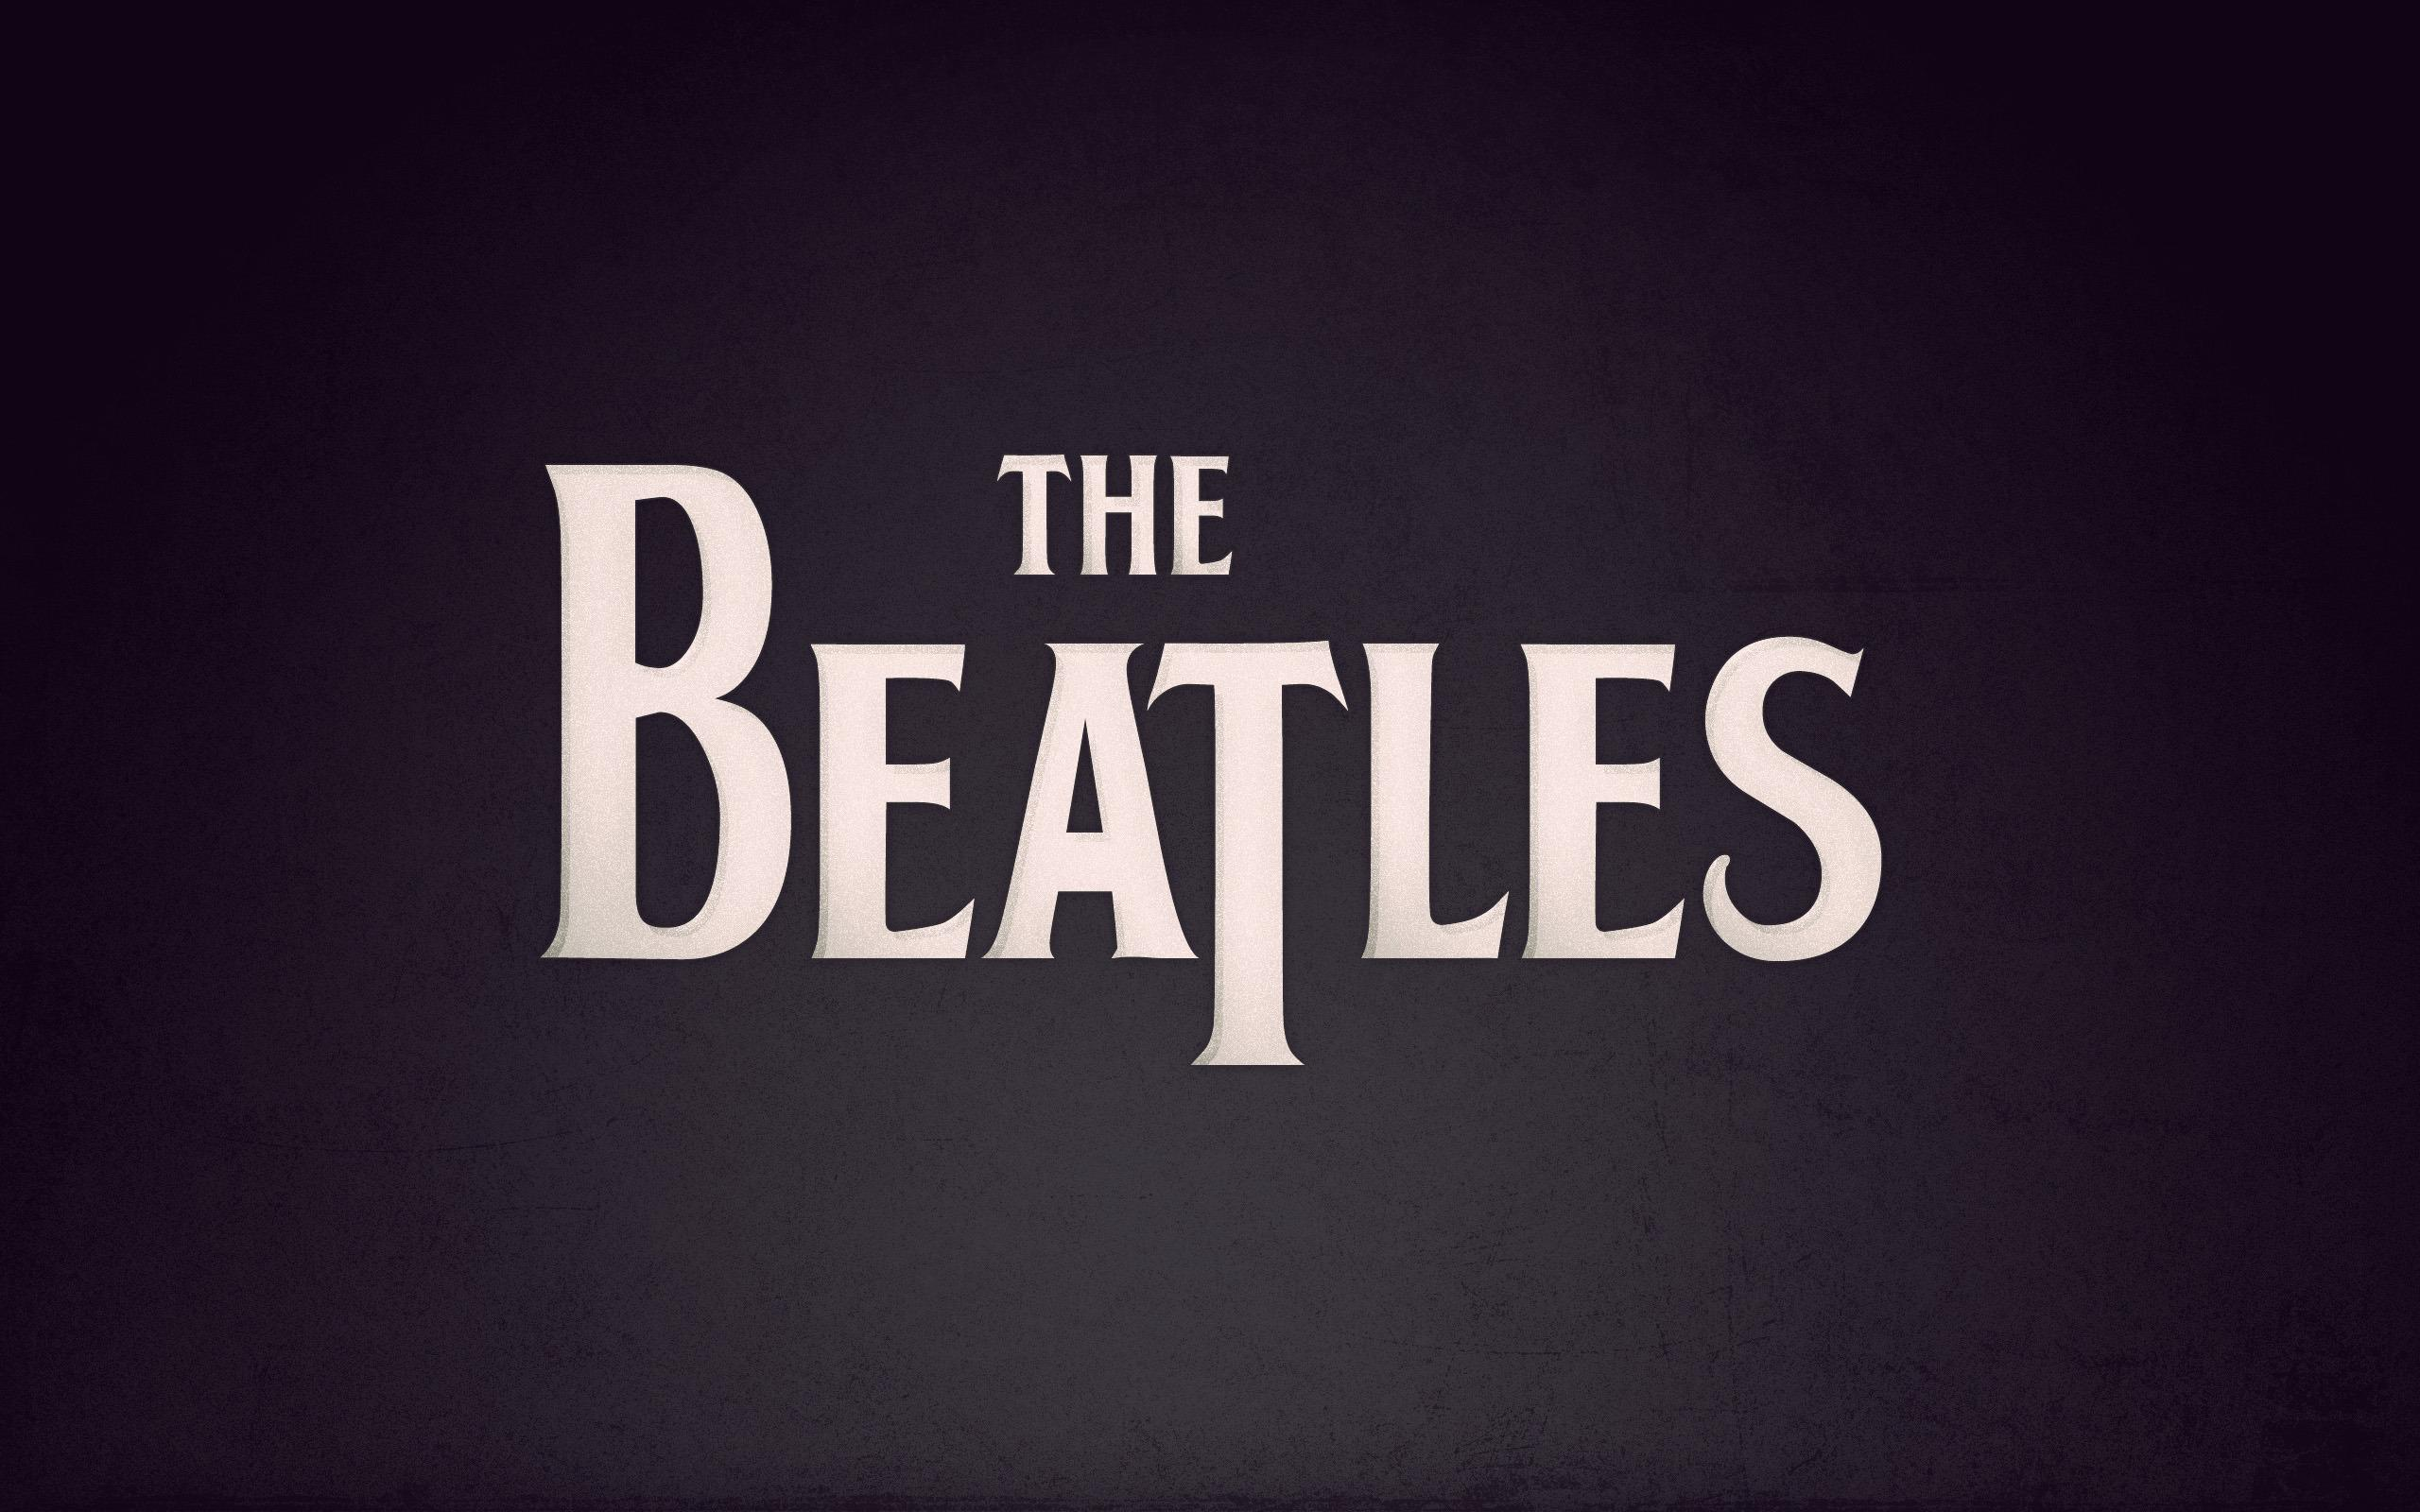 the beatles 10834